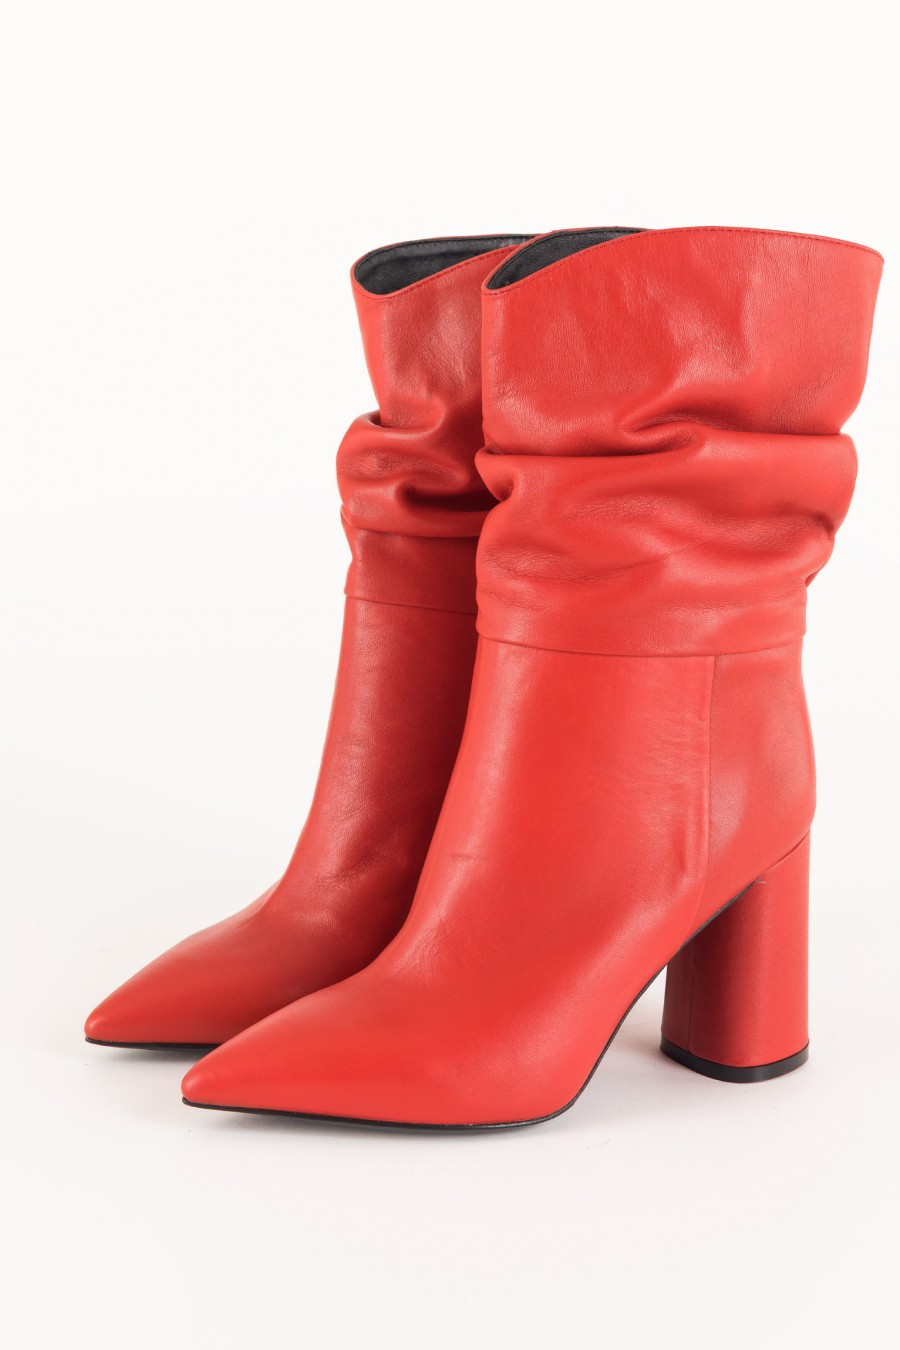 Slouch red boots